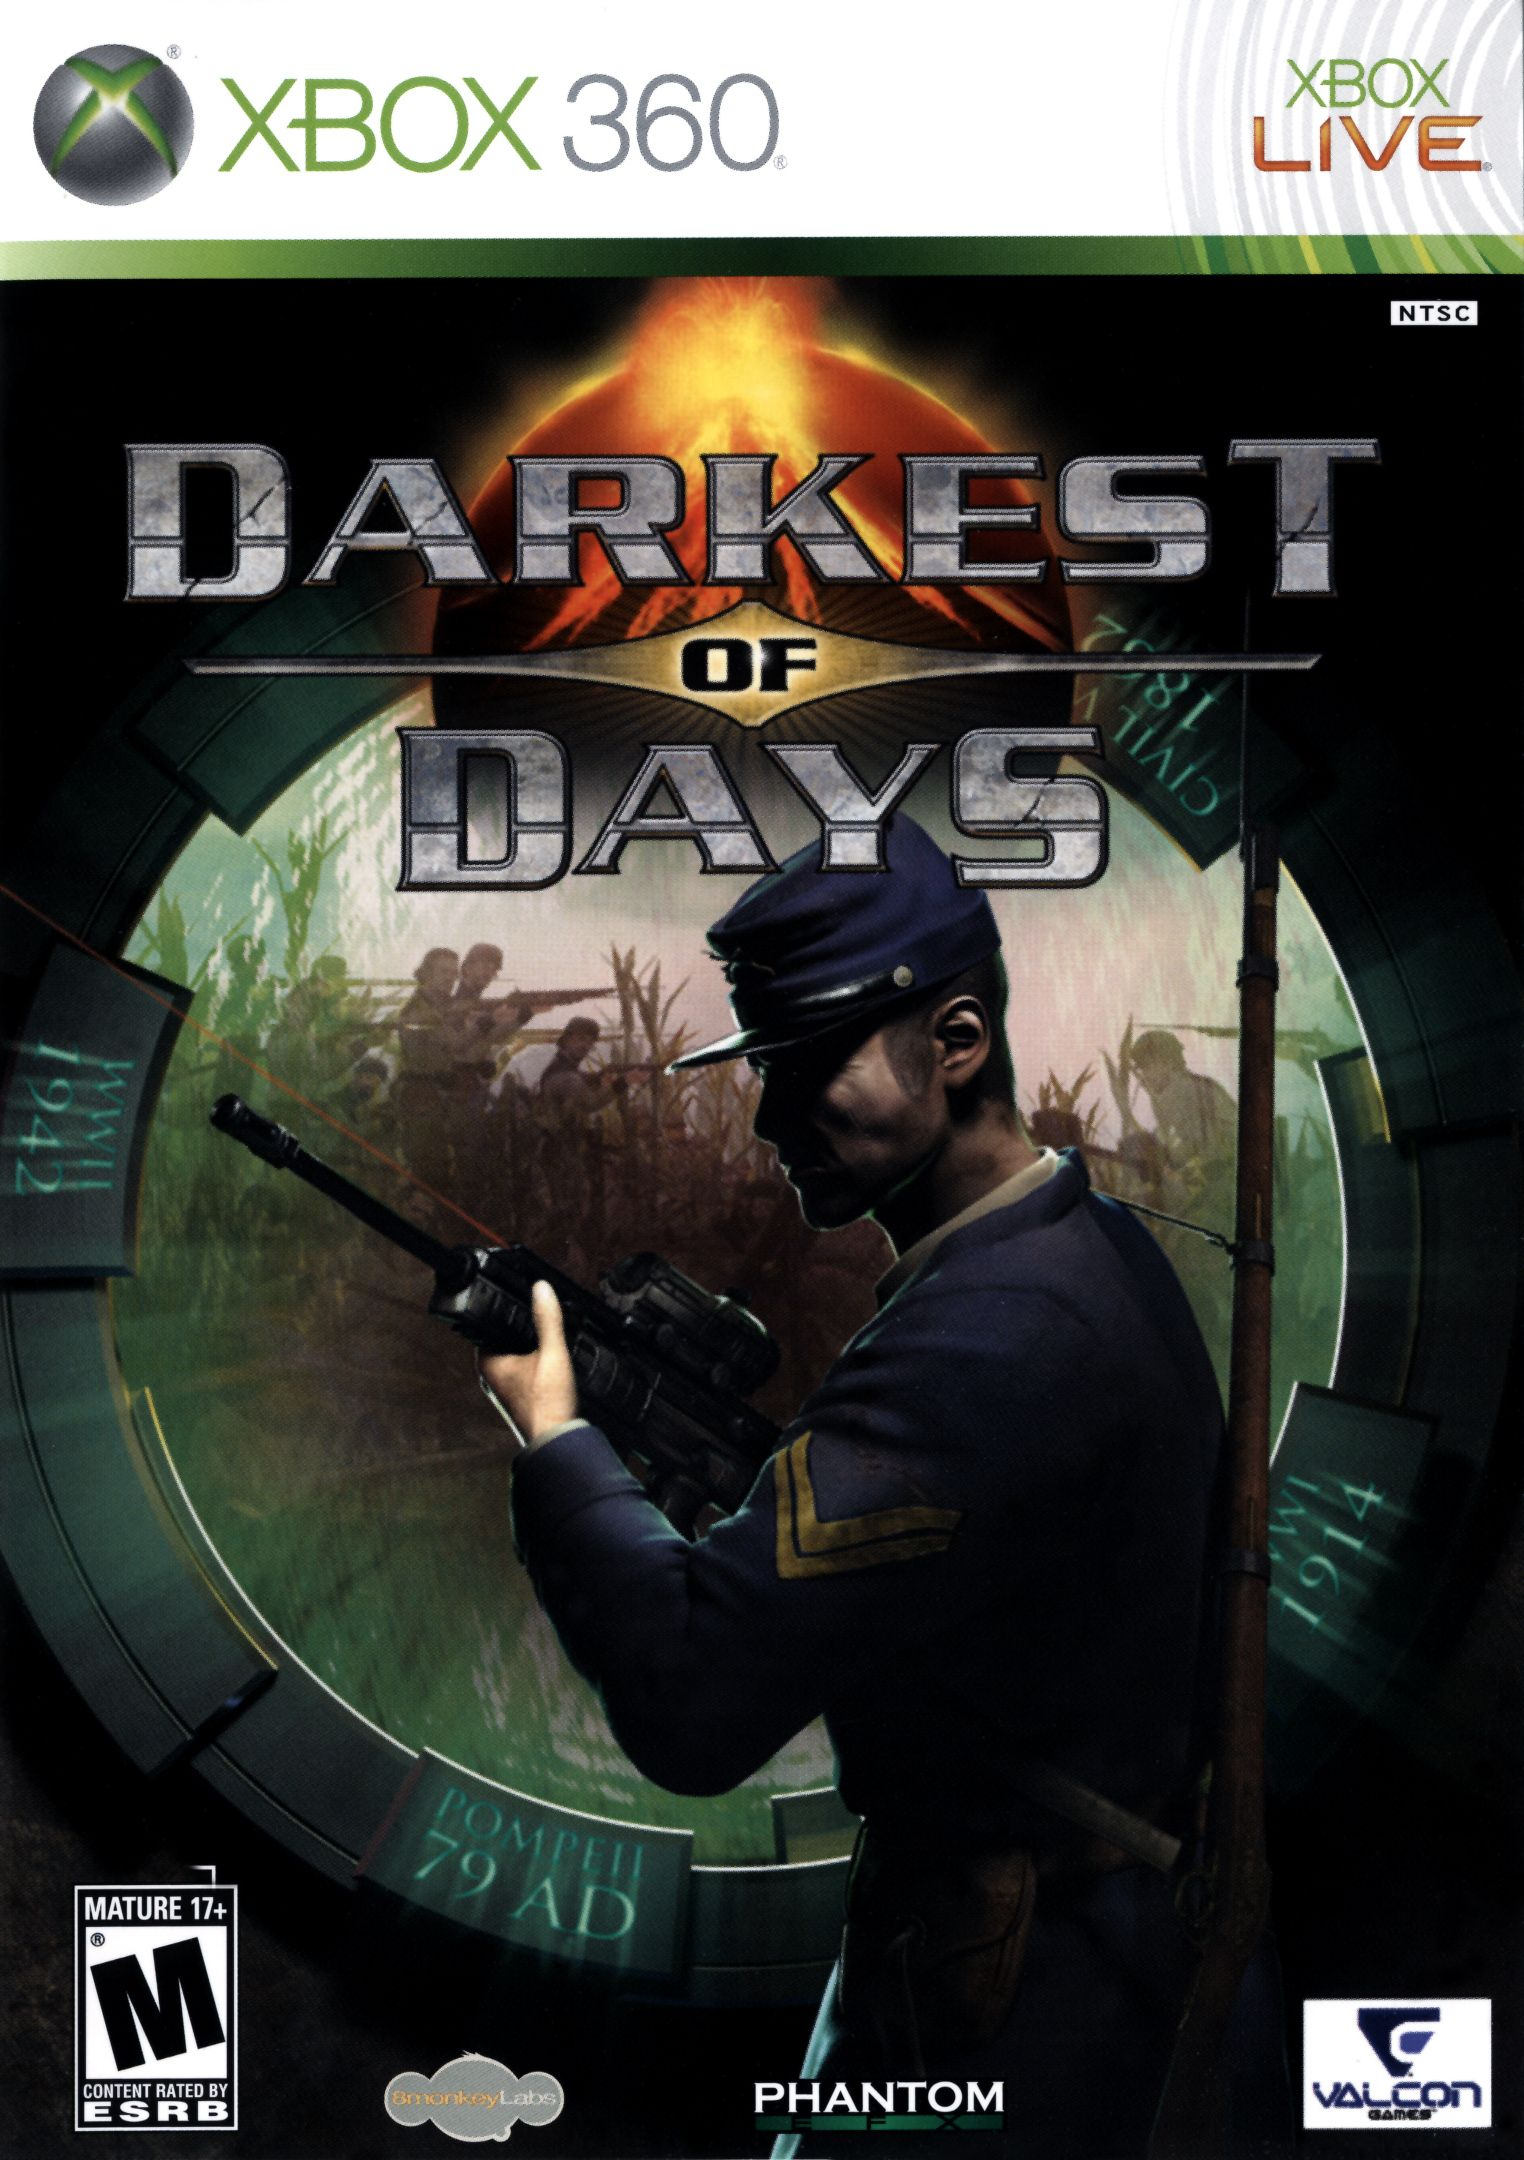 Darkest of Days Gaming pc, Video games xbox, Xbox 360 games